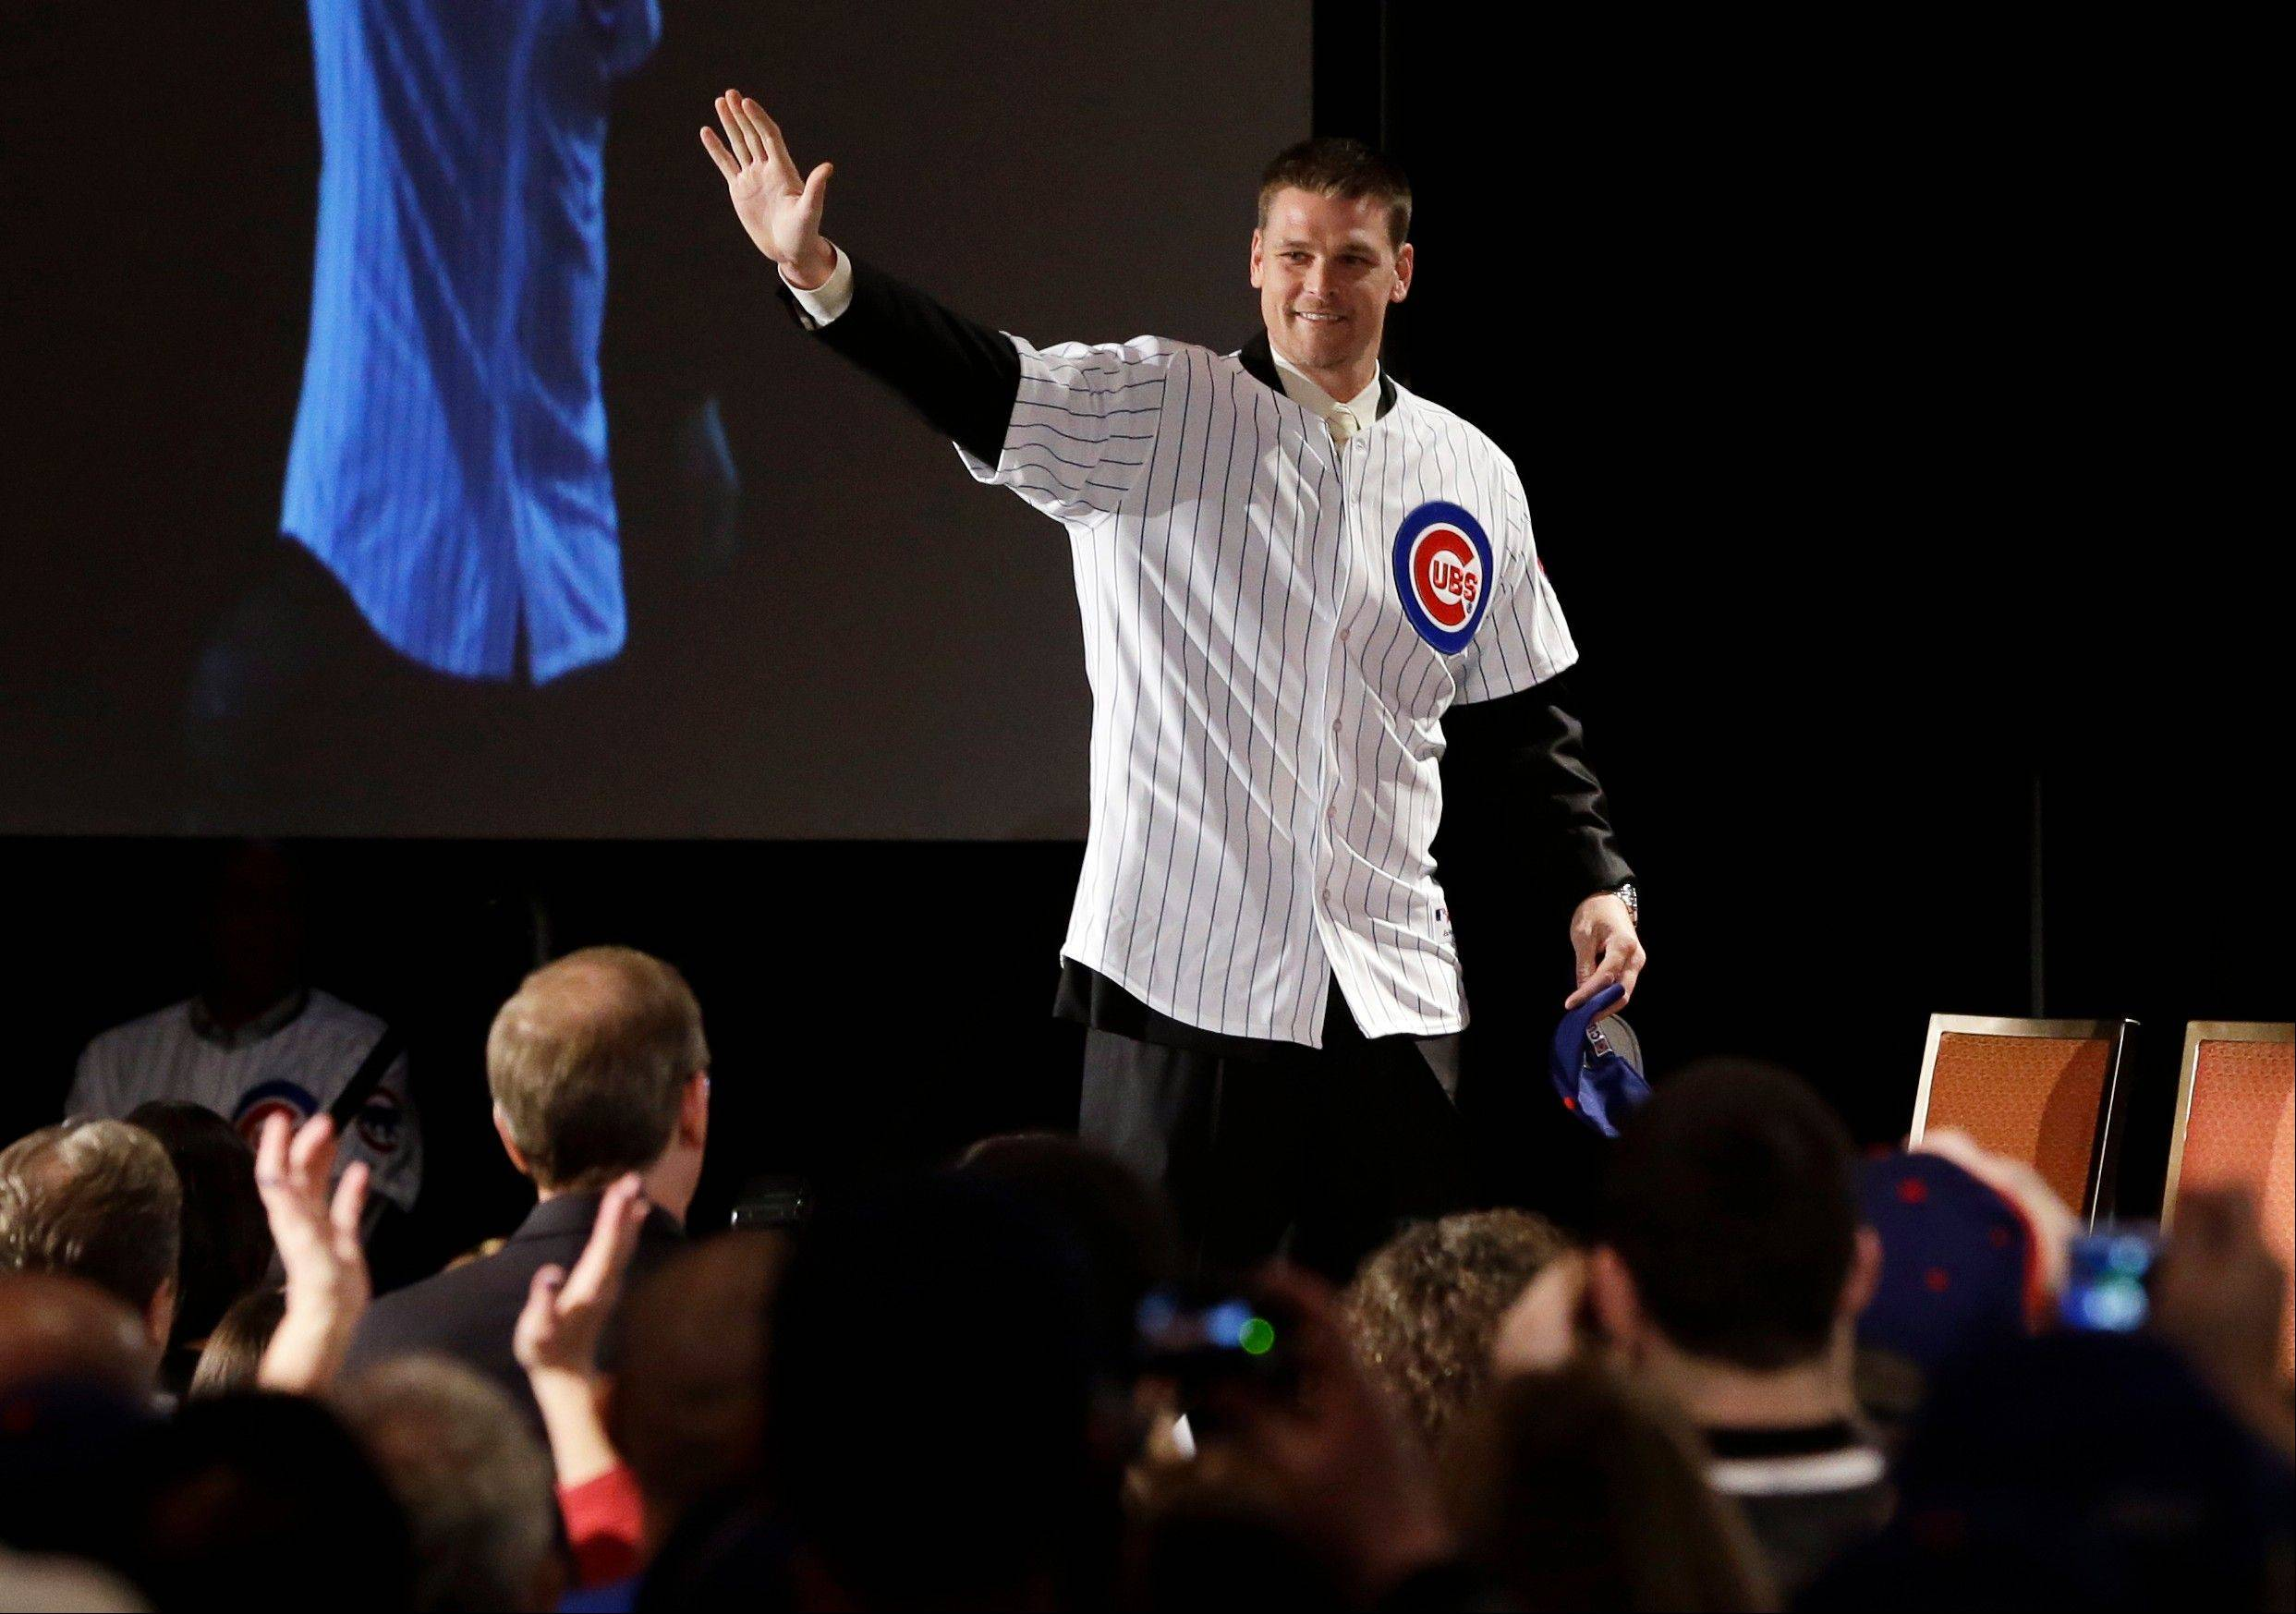 Former Cubs pitcher Kerry Wood waves to fans during the Cubs Convention Friday in Chicago.